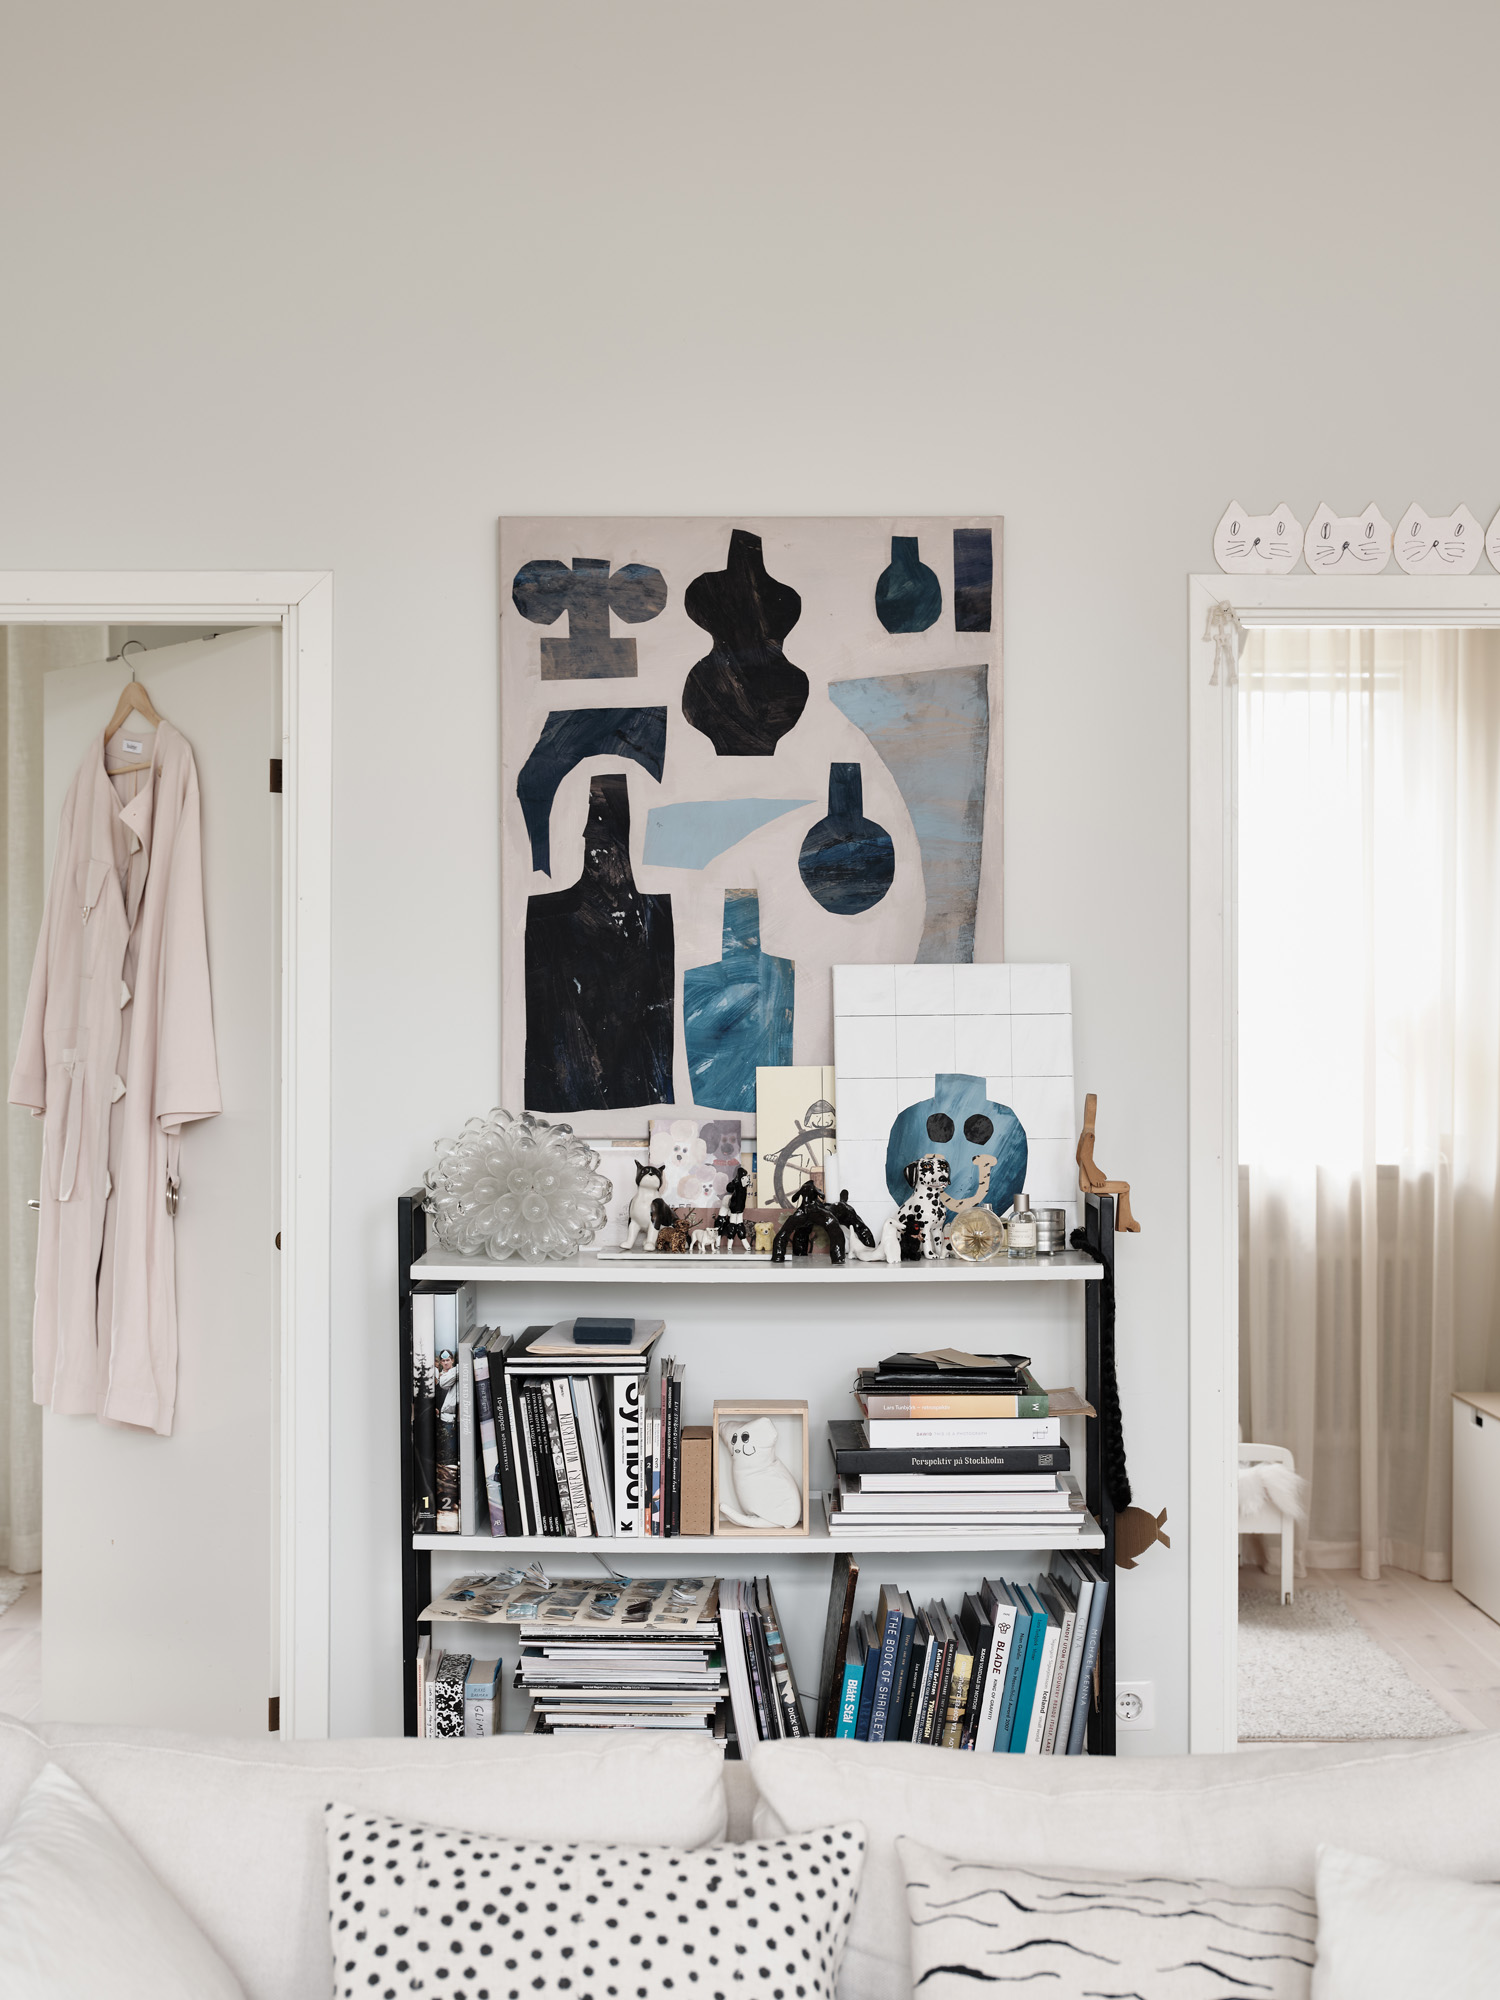 The Nordroom - Subtle Pastel Hues In The Home Of Swedish Artist Emilia Ilke